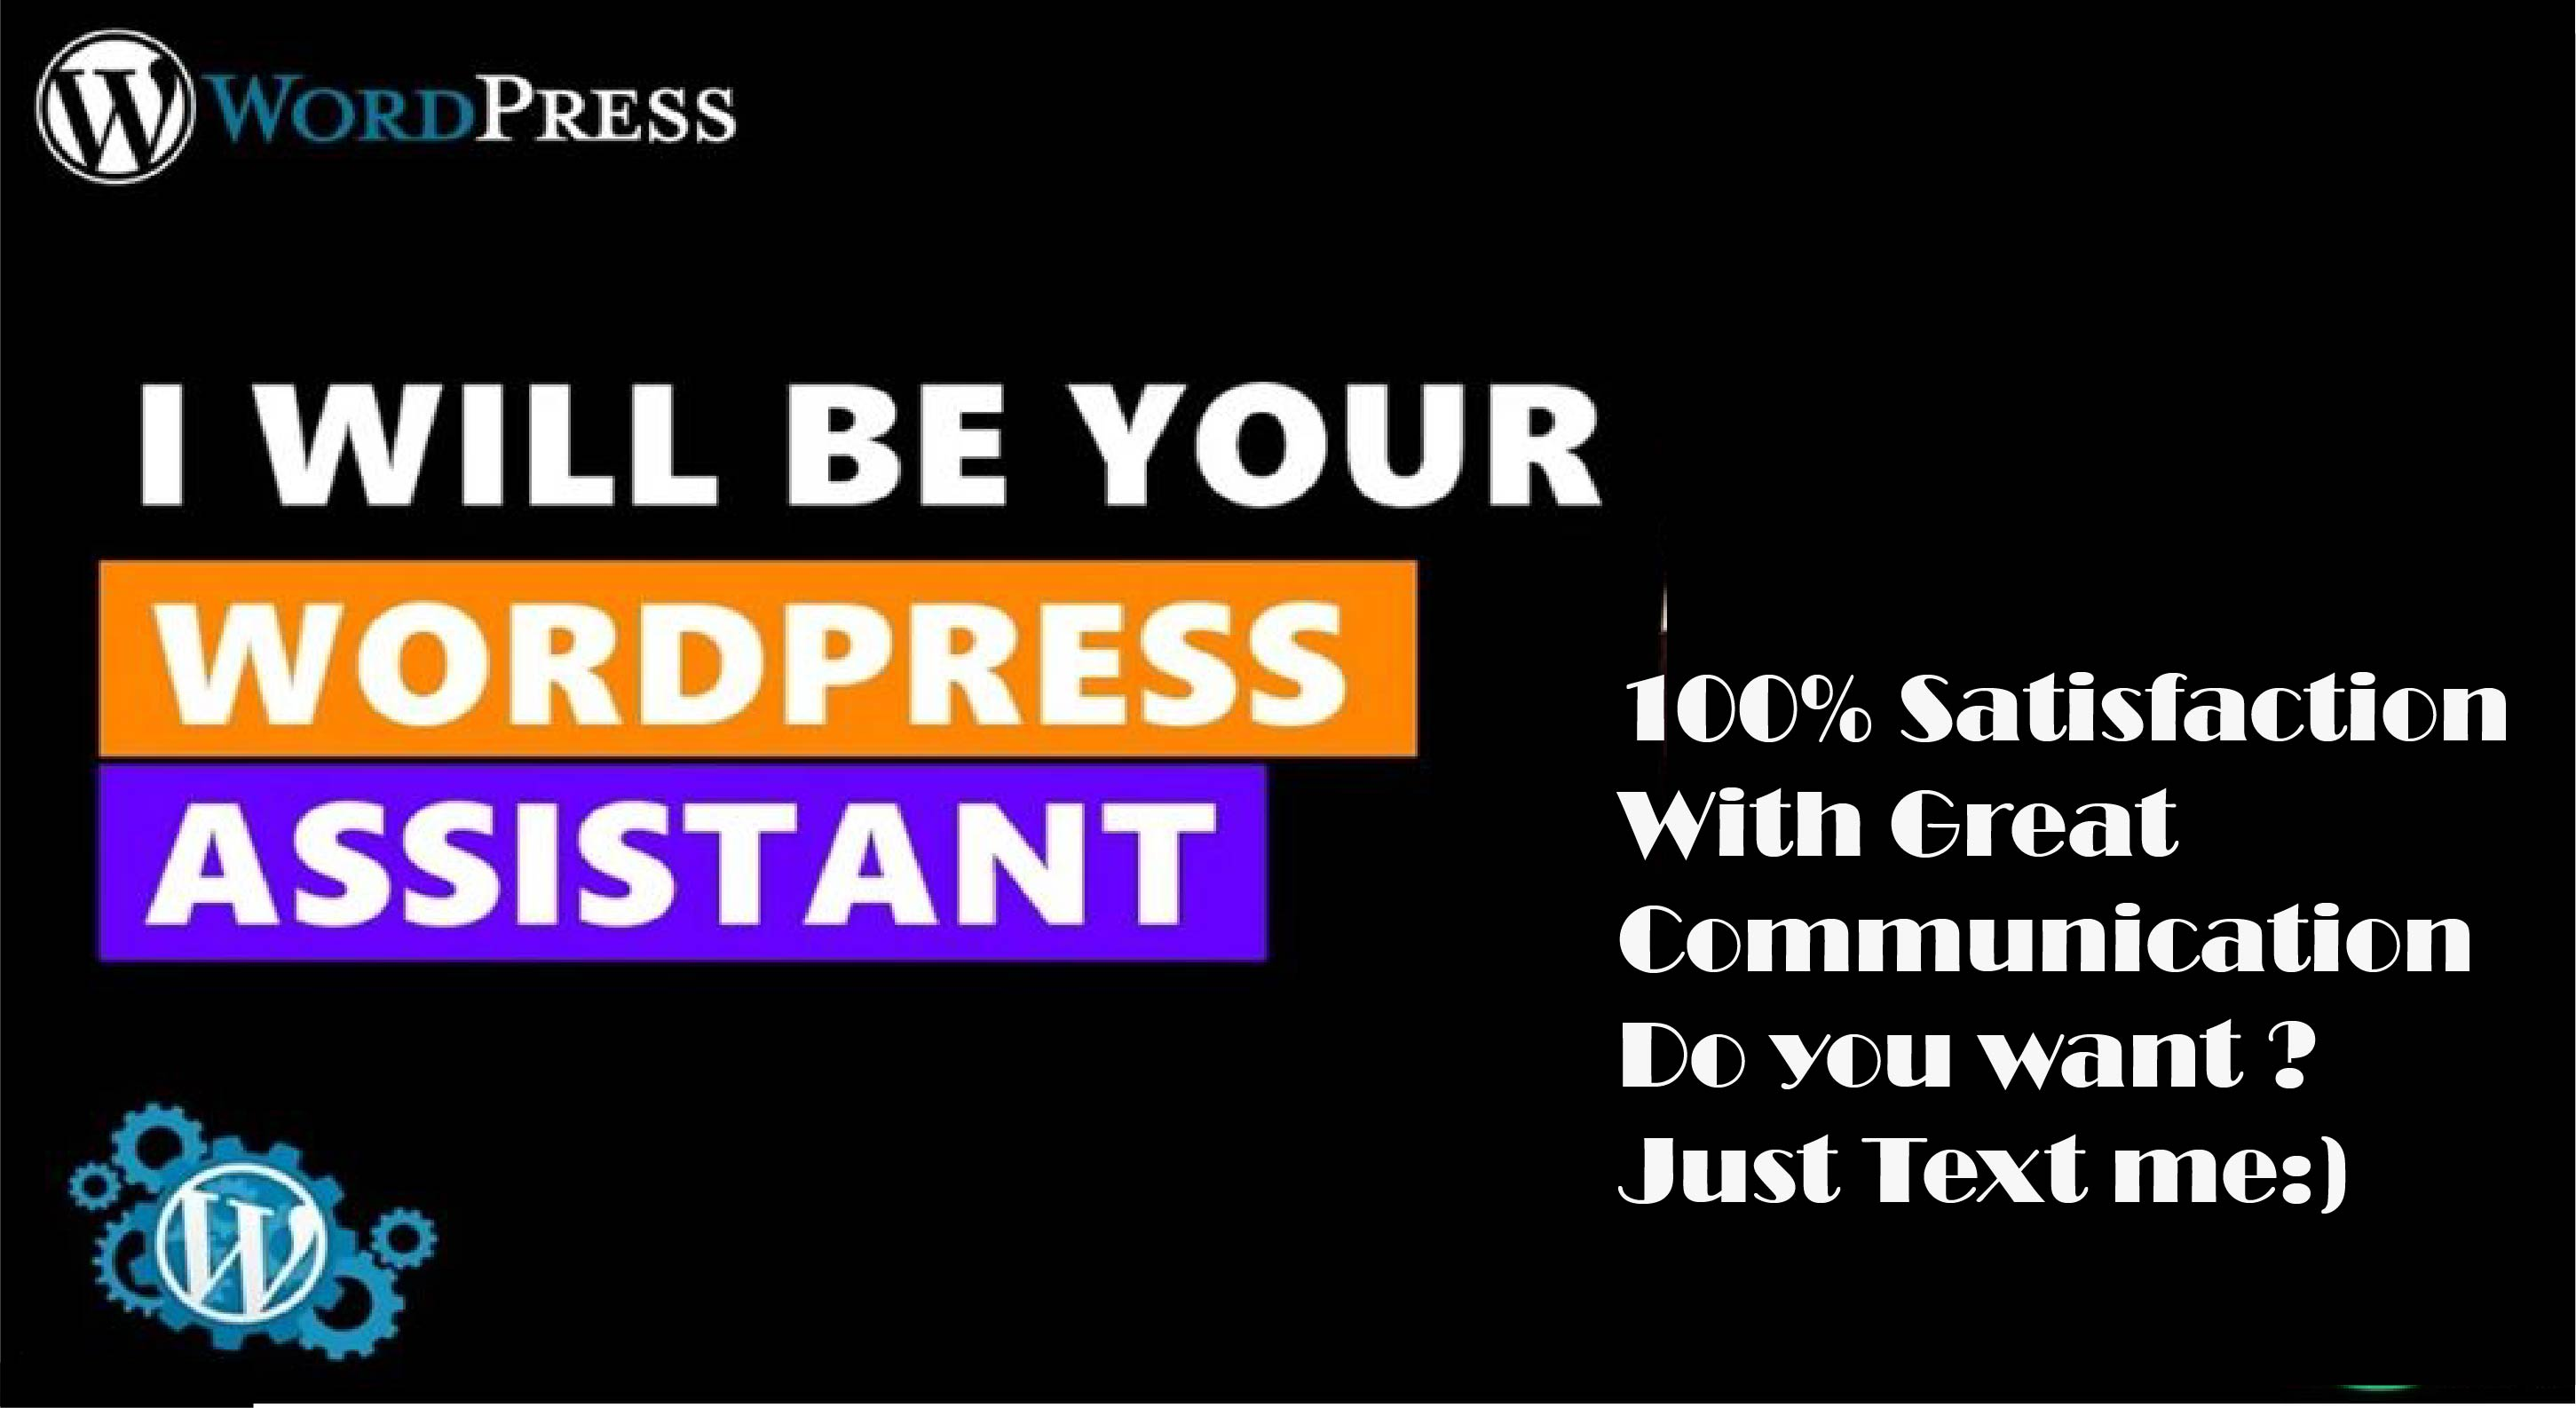 I will be your wordpress assistant